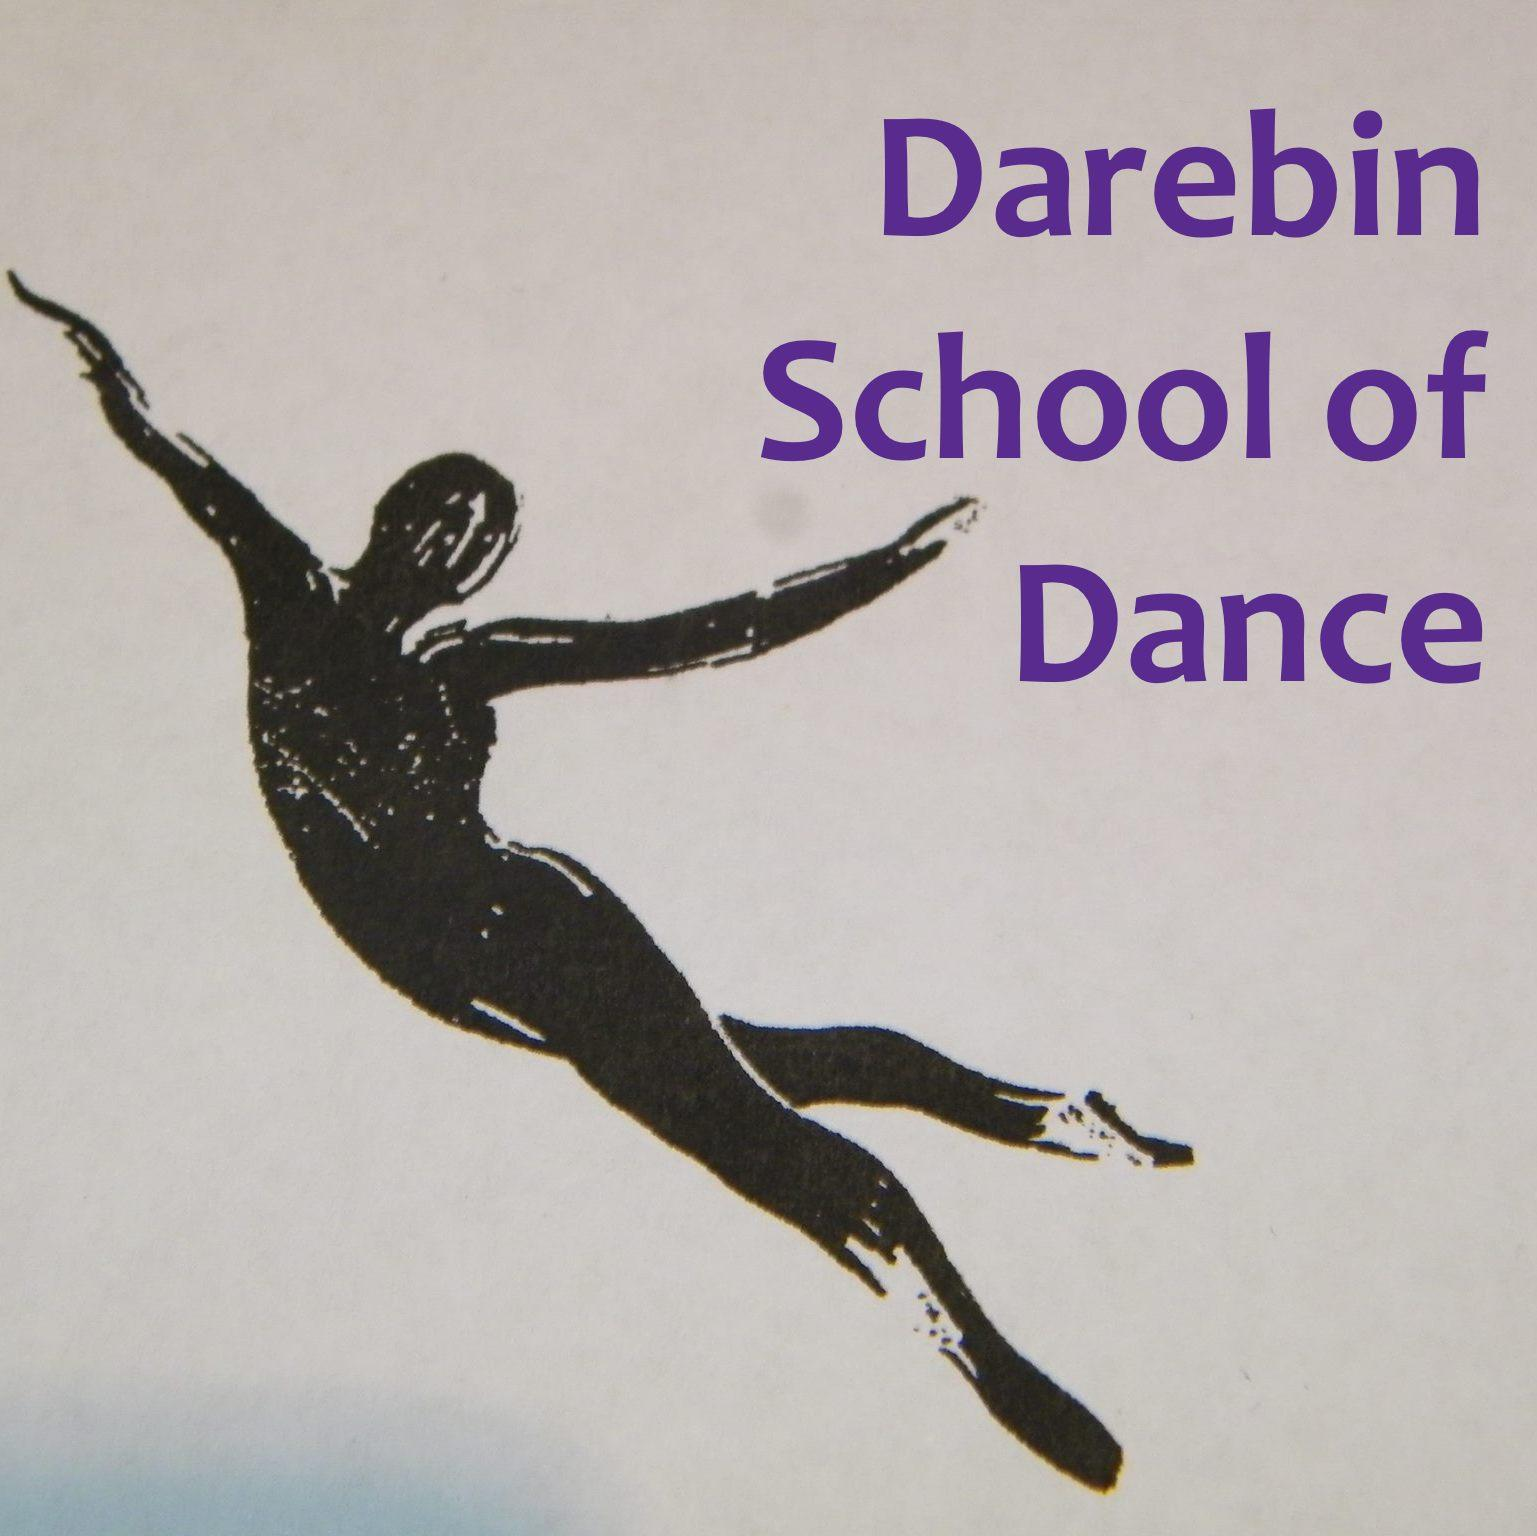 Darebin School of Dance